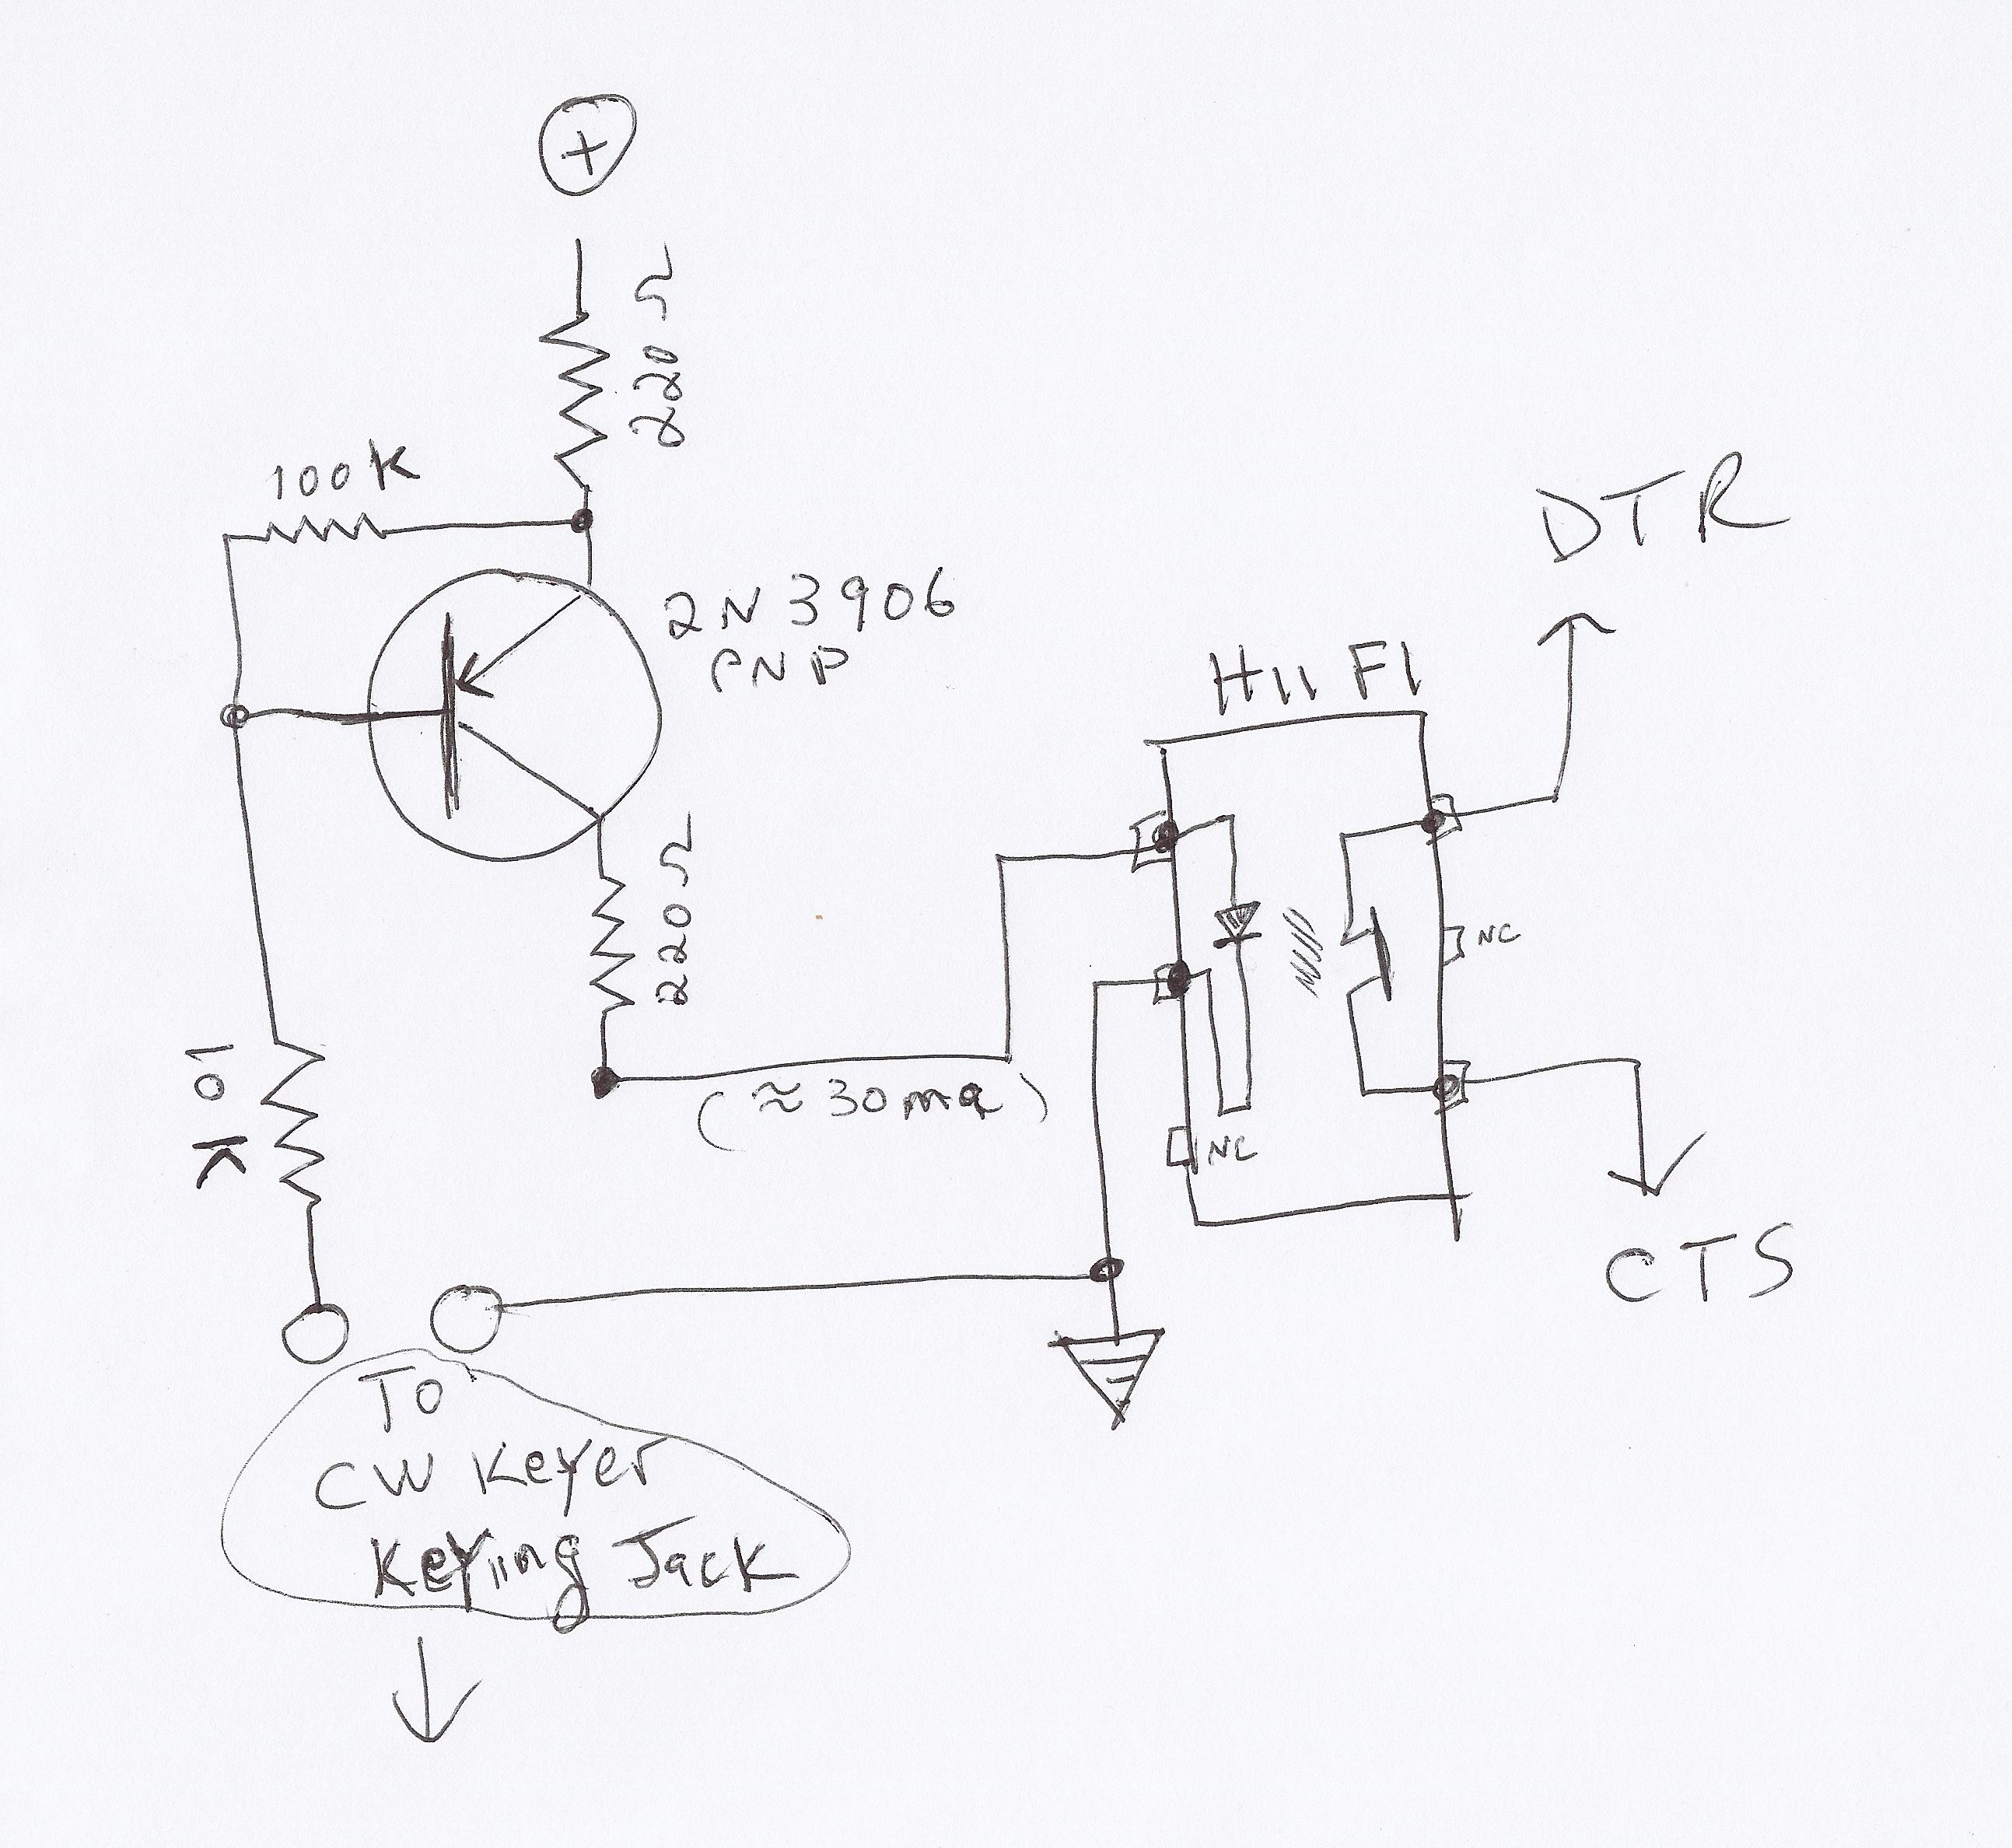 New Circuits Page 50 Ledcircuits 2 Delabs Schematics Electronic Circuit Using Virtual Serial Ports For Ham Radio Dahdidah Cw Keyer